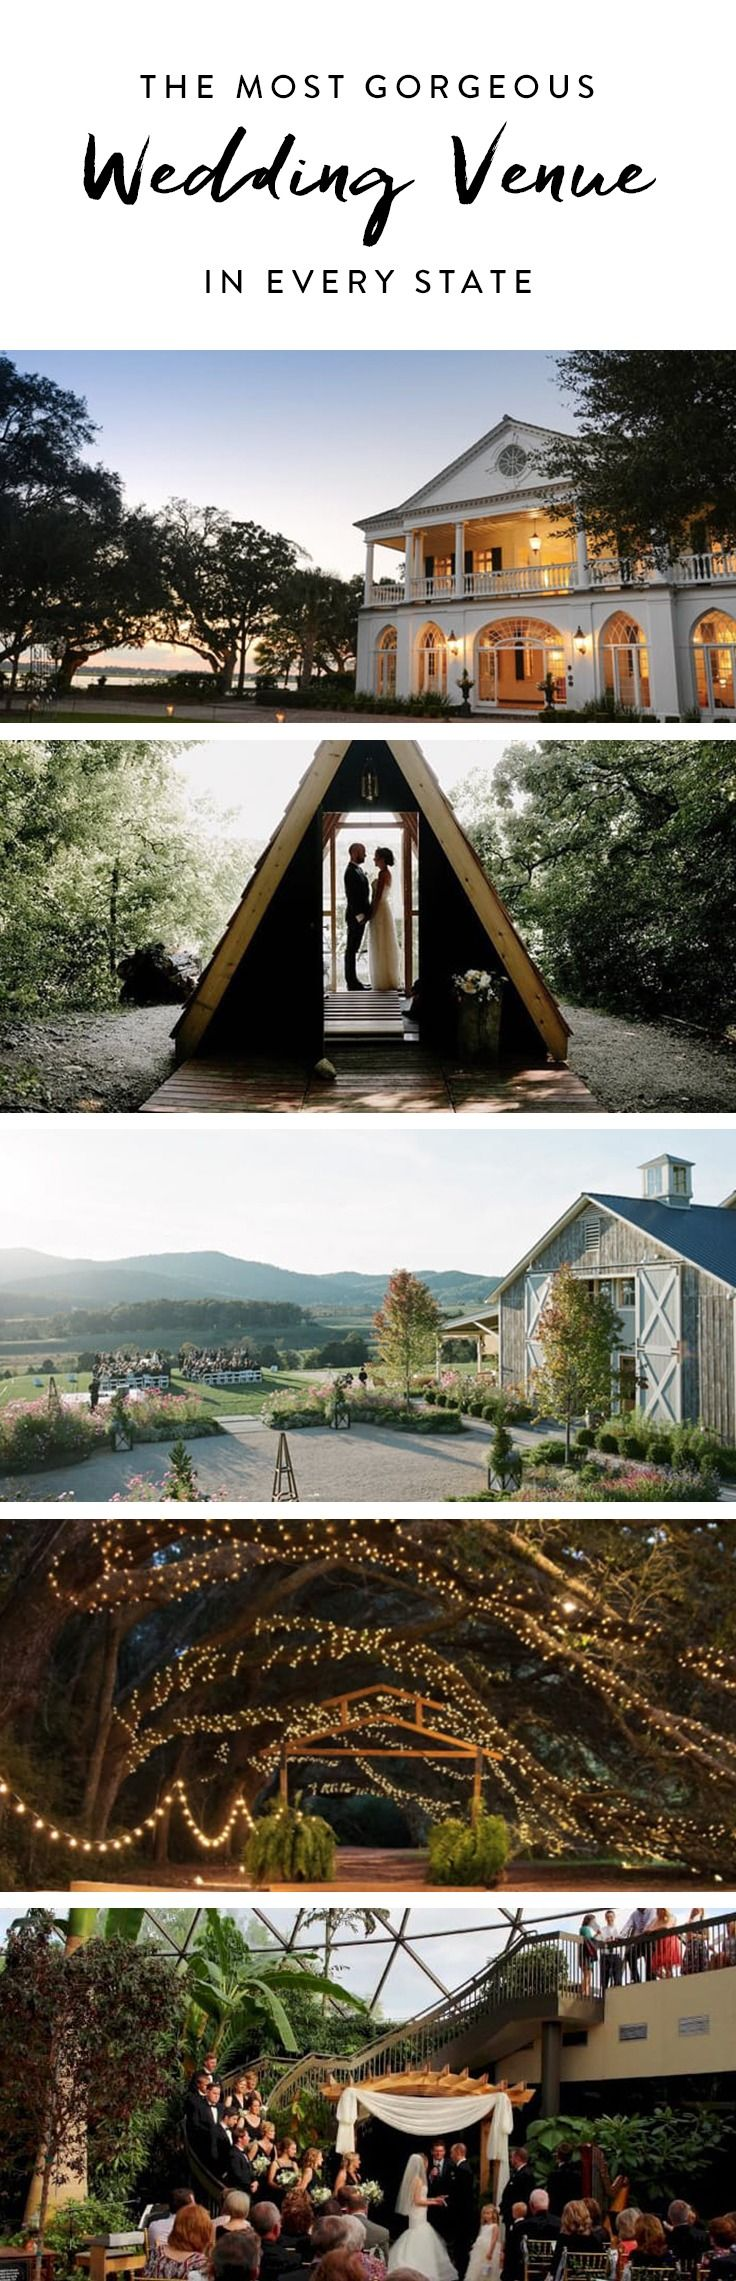 You're engaged. Yay! But now the most taxing part of the planning process begins: Finding a location where you and your fiancé (ooh là là) can get hitched. To help you get started, we've rounded up the most stunning wedding venue in every state.